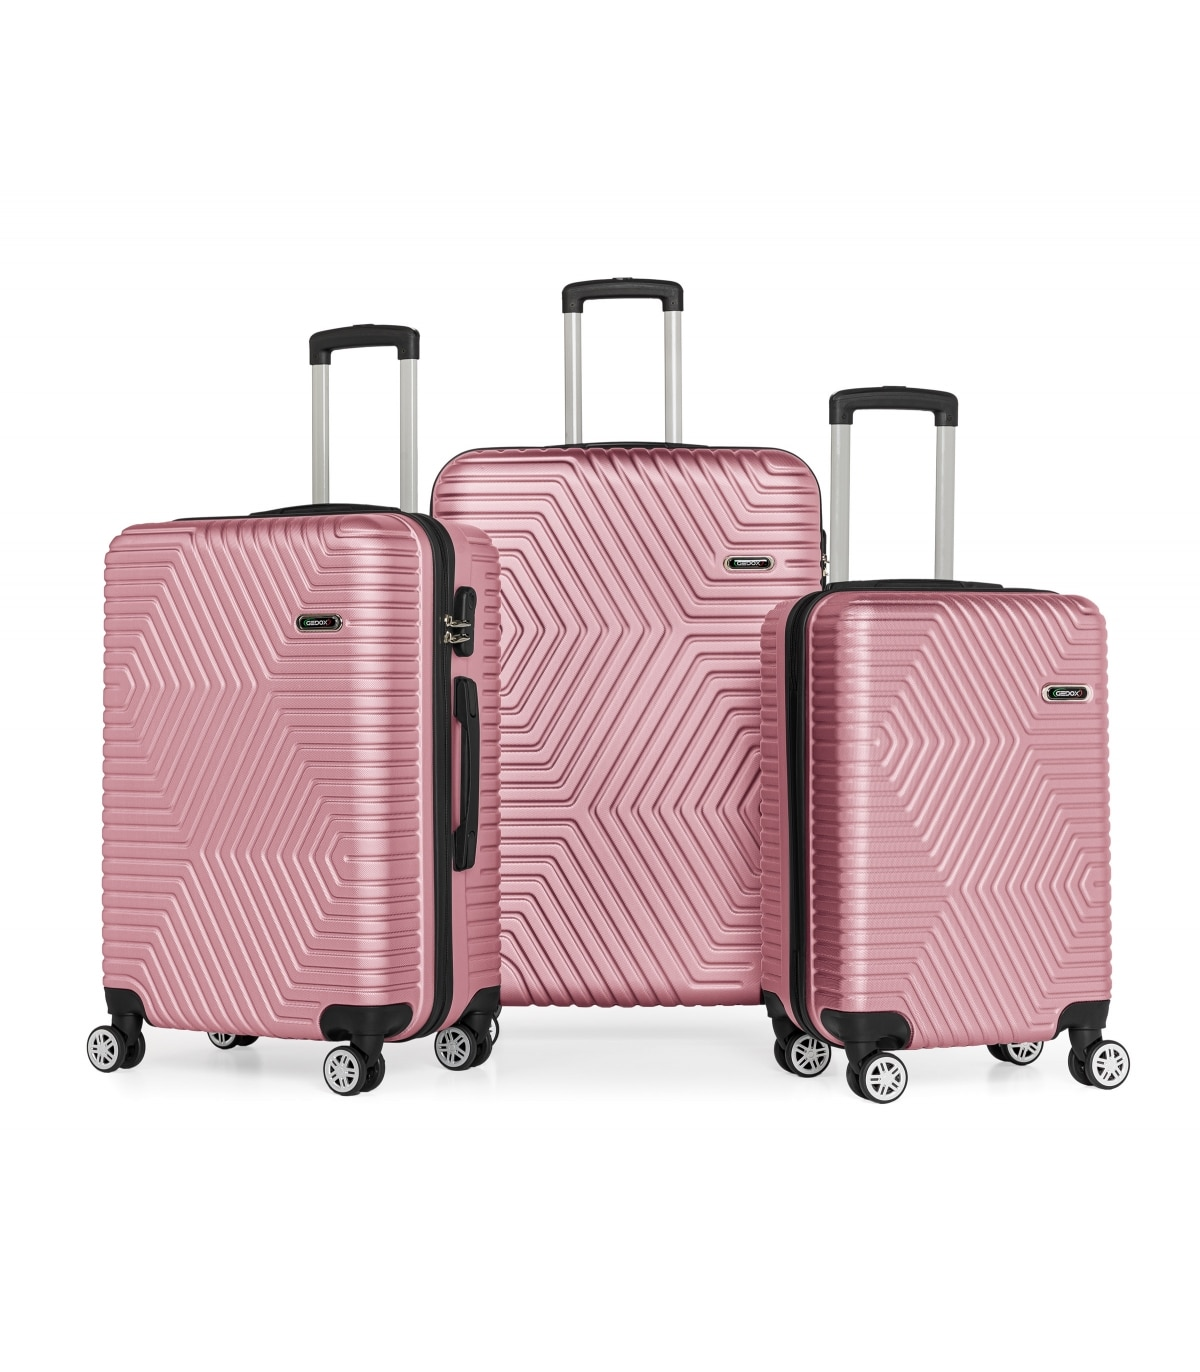 G&D Polo Suitcase ABS Triple Luxury Suitcase 600  - Luggage bag travel suitcase business luggage wheeled bag wheeled quiet